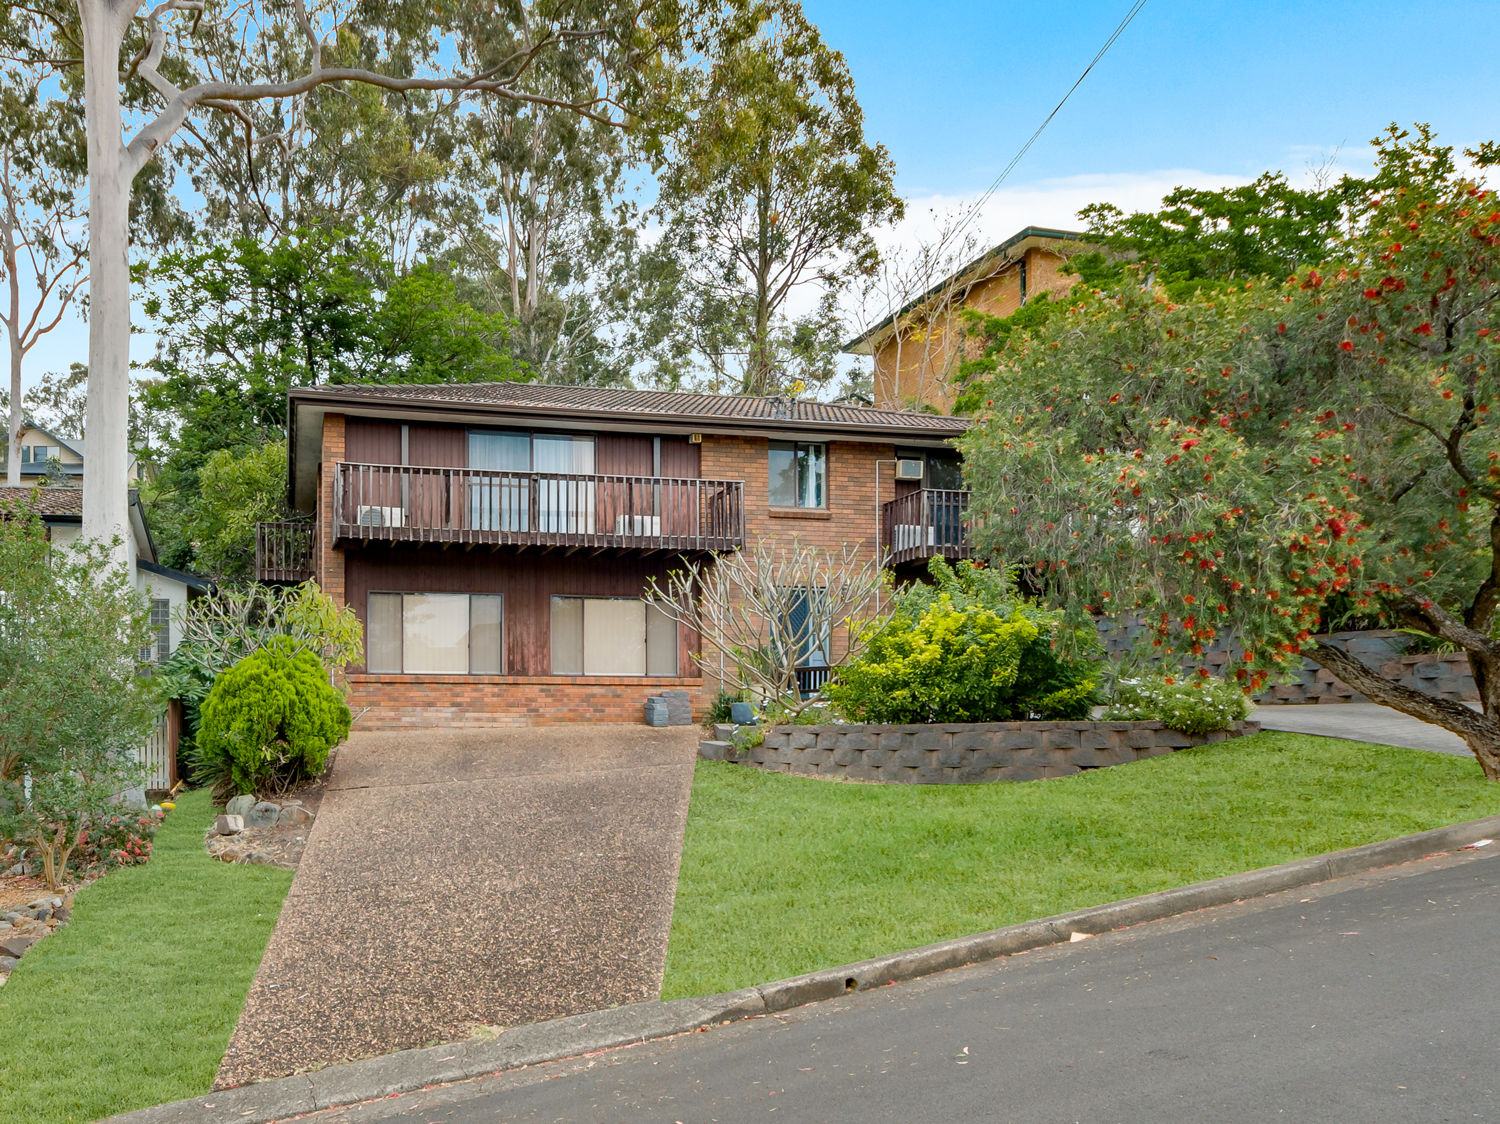 ONSITE AUCTION - SATURDAY 14TH NOVEMBER 2020 @ 9.30AM